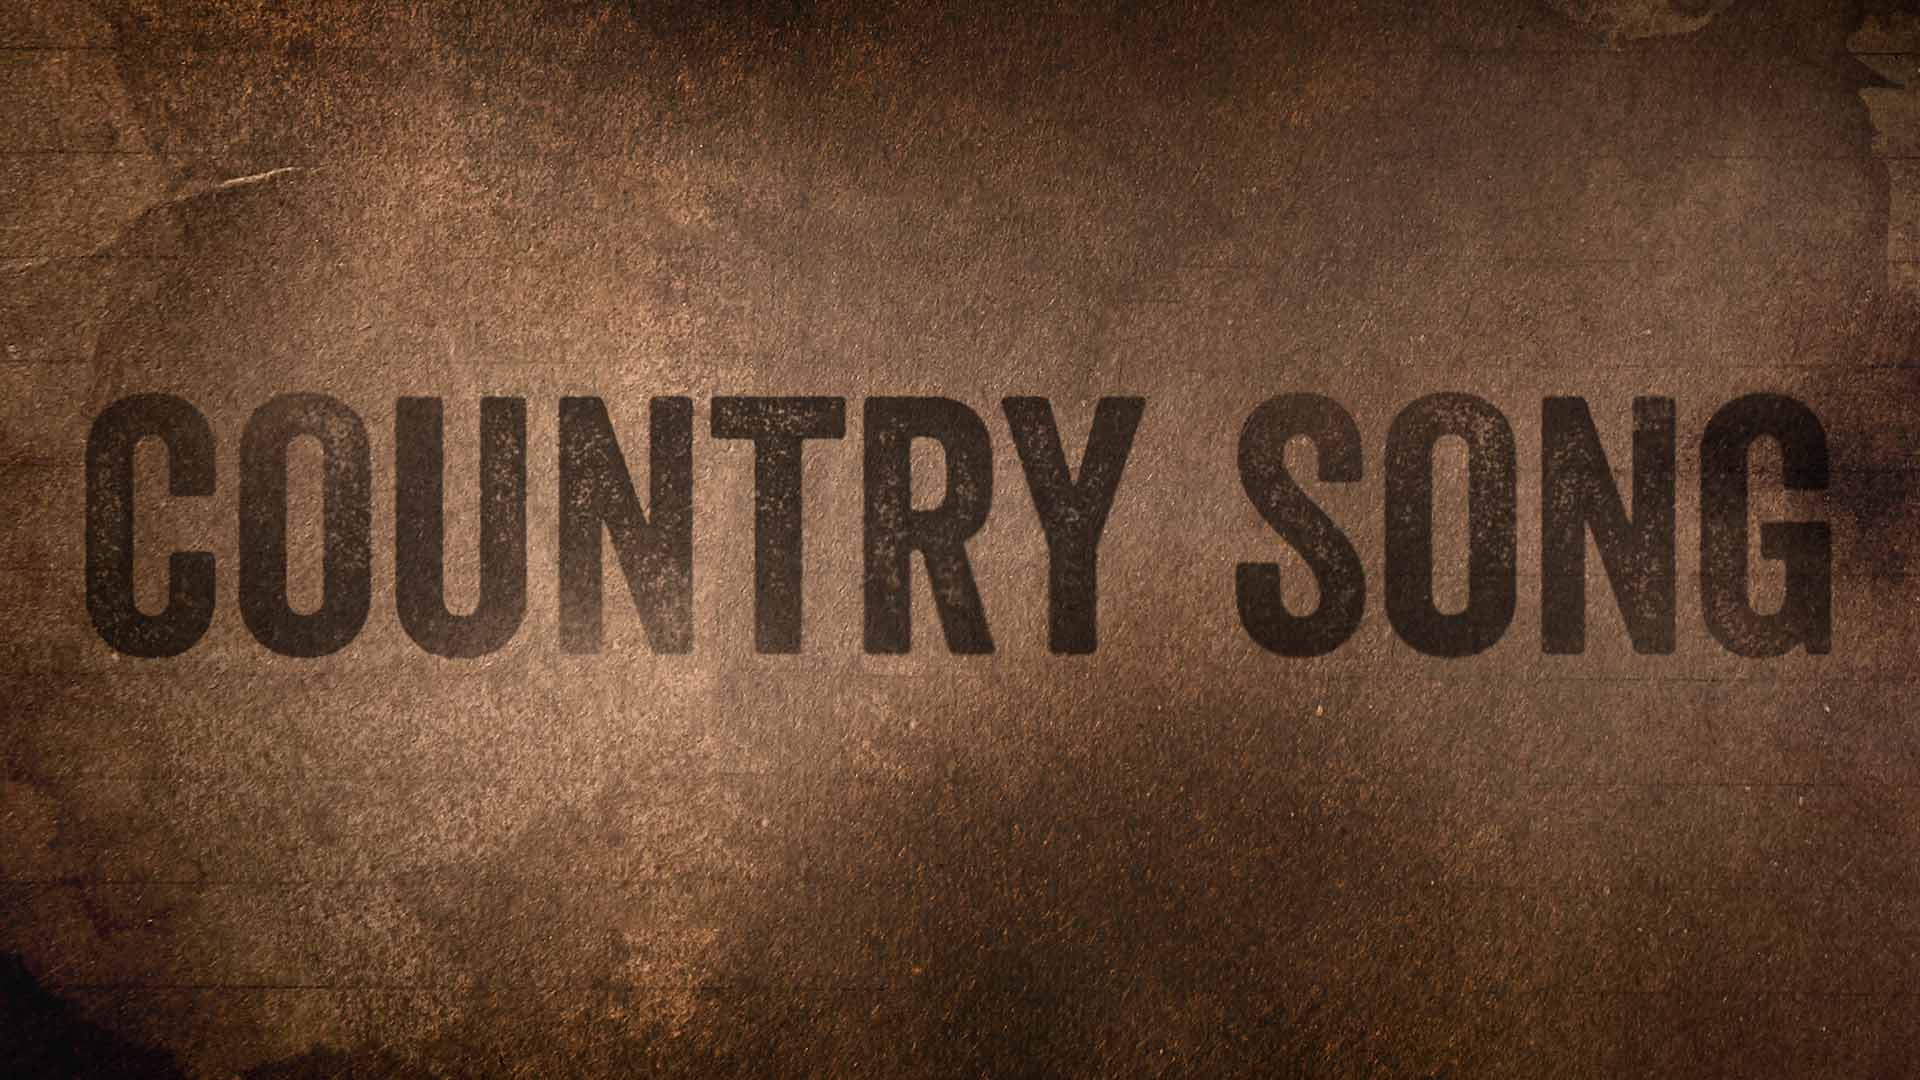 CountrySong01